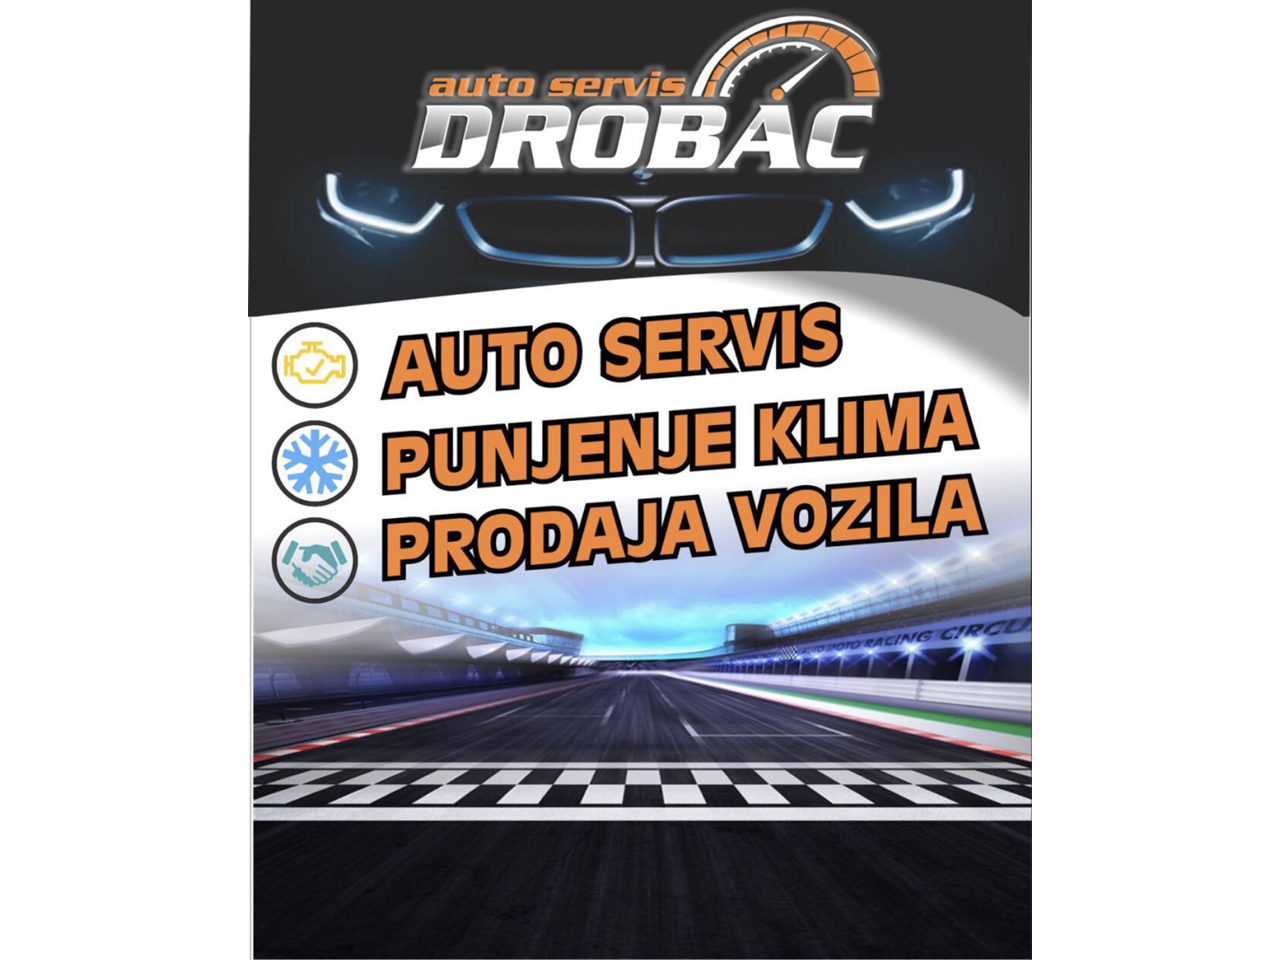 CAR LOT AND CAR SERVICE DROBAC Tire repair Mladenovac - Photo 1